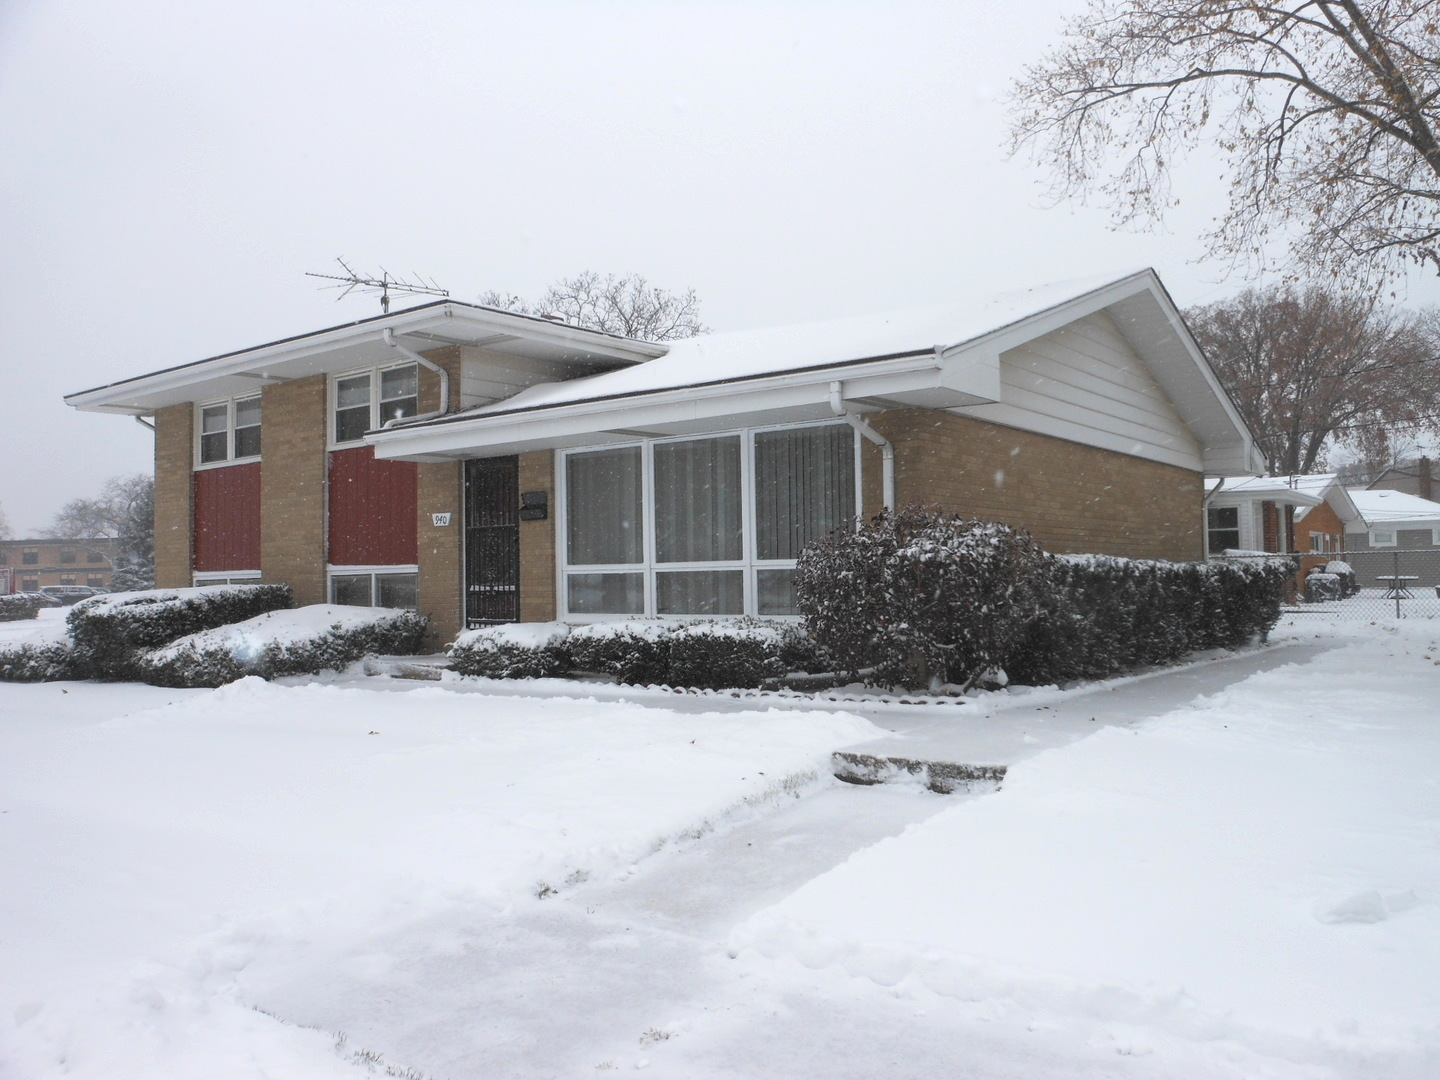 "Make this your home for the holidays!  Spacious brick Split Level in south Villa Park offers vaulted ceiling in Living & Dining Rooms w/newer (10/2019) carpet, eat-in Kitchen w/appliances, all 3 bedrooms w/hardwood floors, 2 baths, lower level Family Rm, newer furnace/central air (2017), Hot water heater (11/2019), sump pump (2019), windows replaced in Bedrooms, Kitchen & Dining Rm, detached 2 car garage.  Walk to Jr. high & high schools.  A great place to call home!   Solid house in good condition - but selling in ""as-is"" condition."